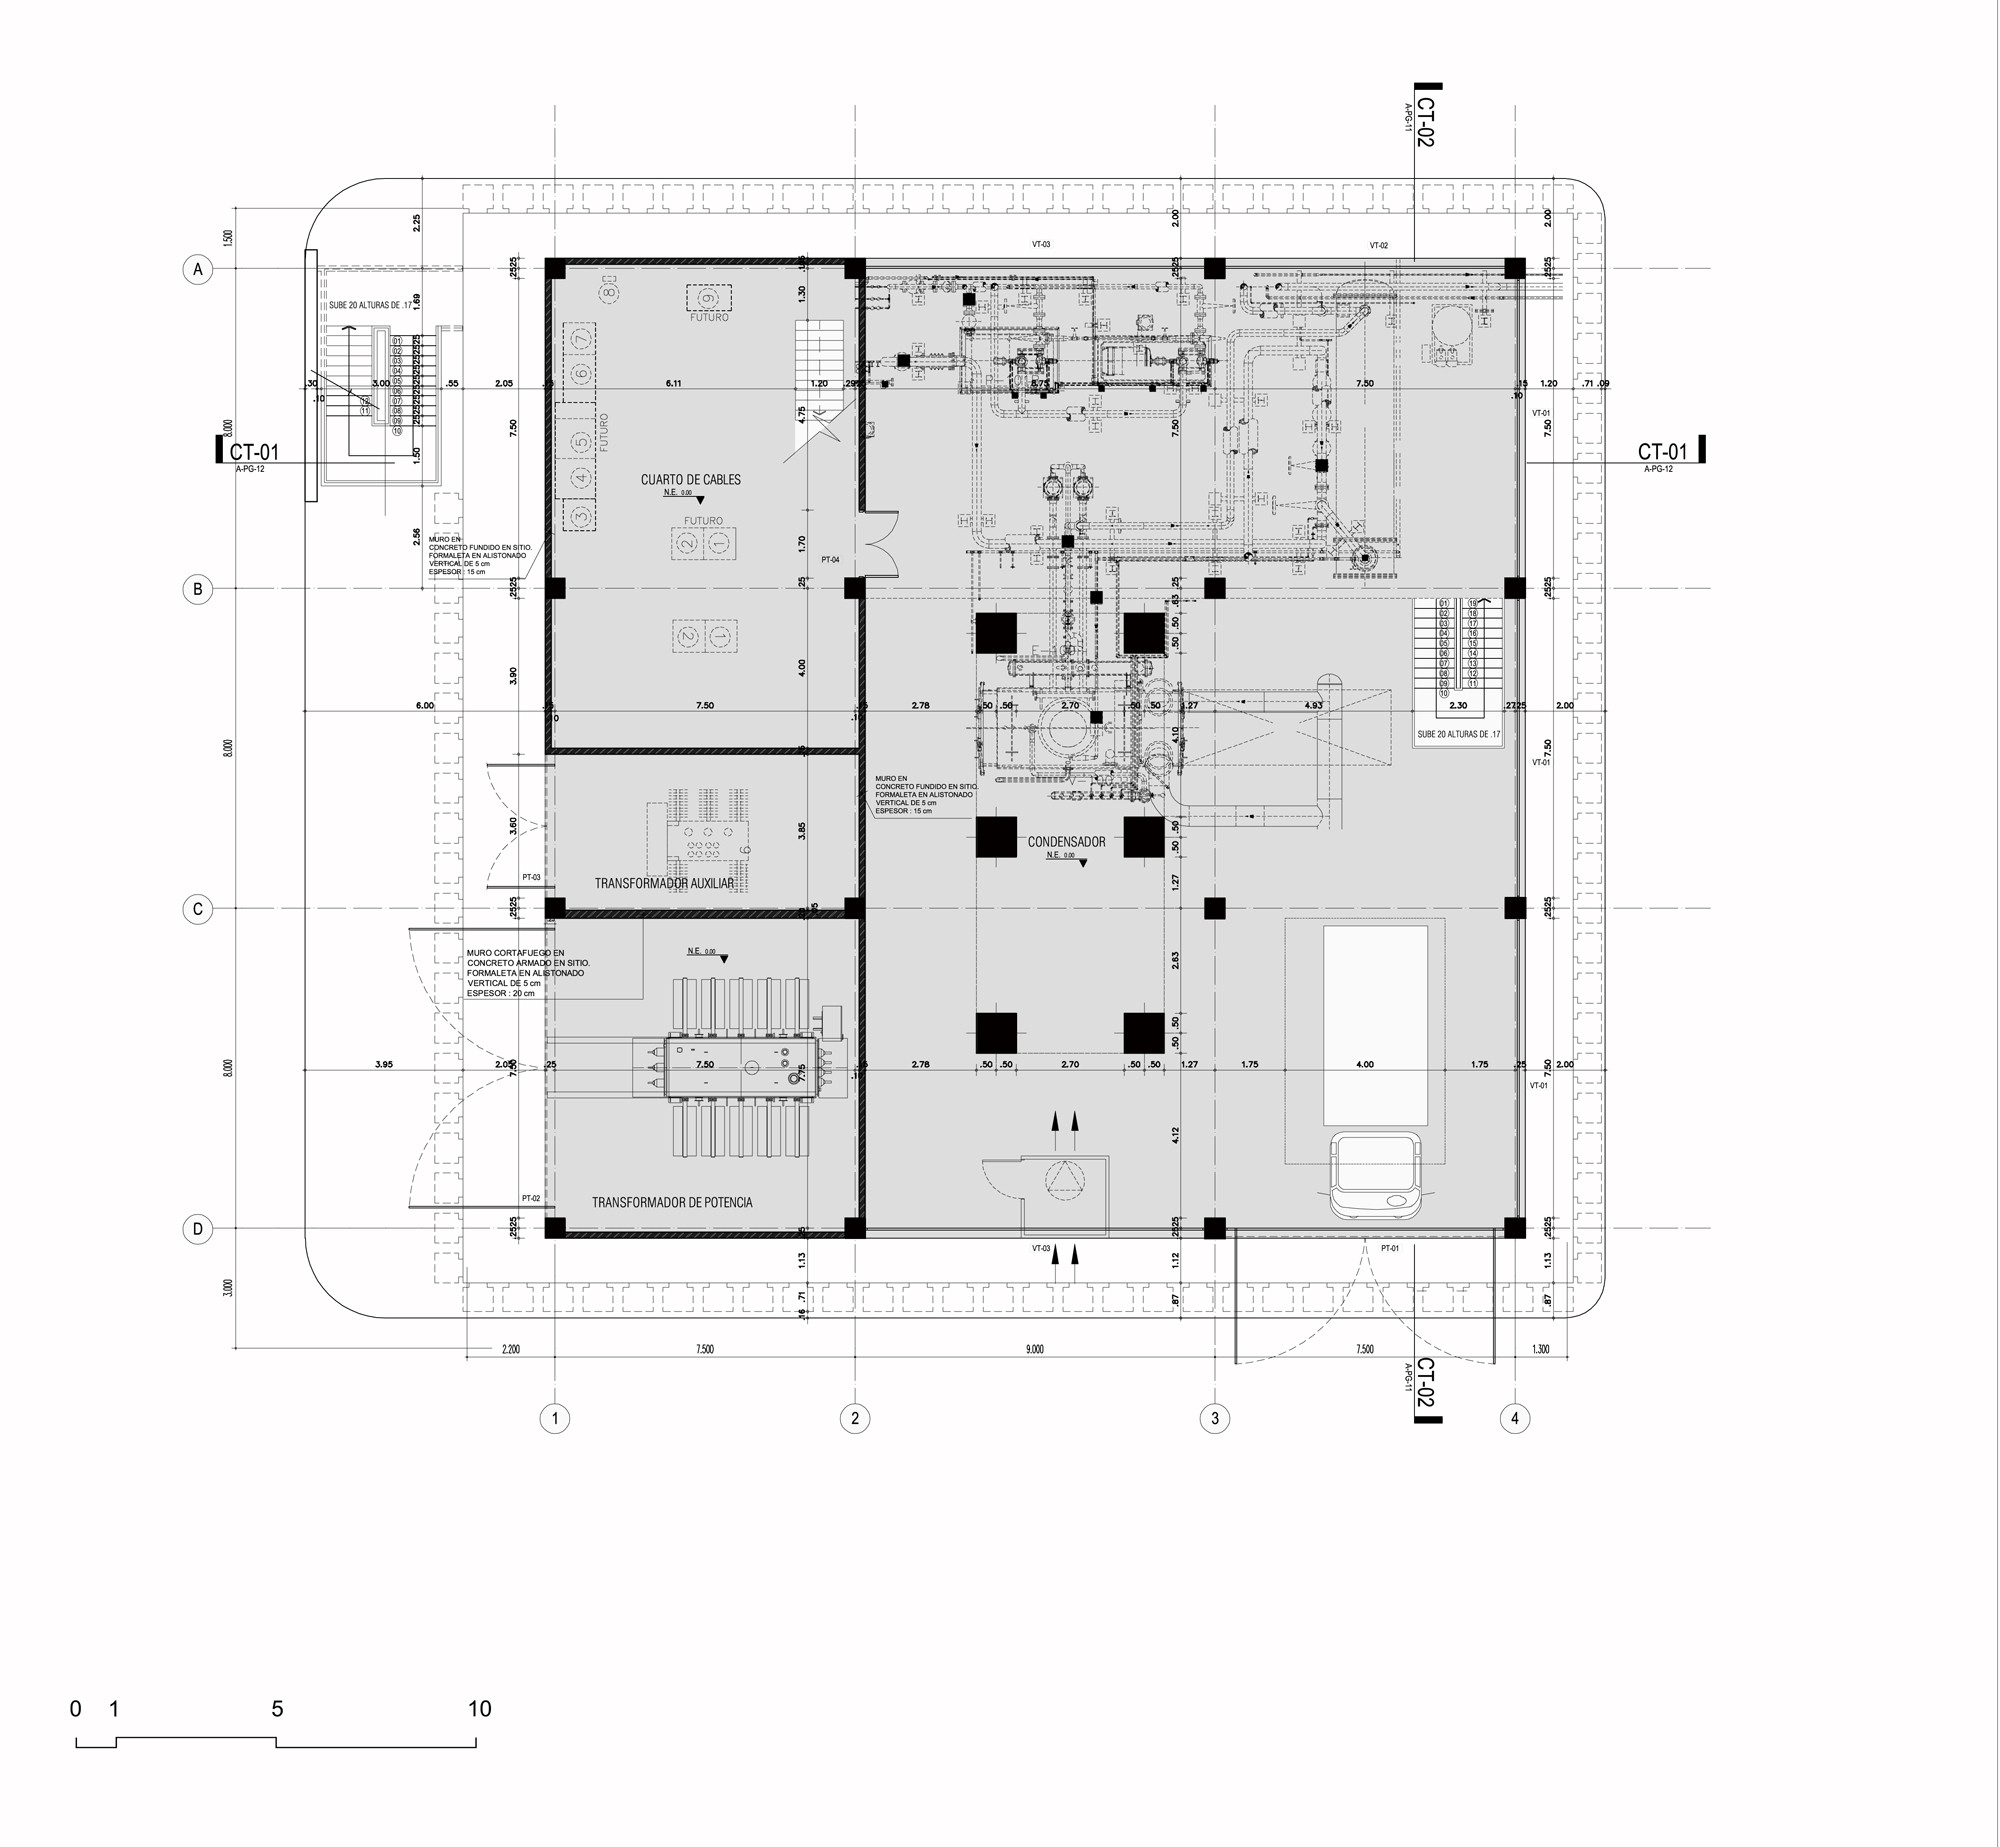 medium resolution of argos building for an electrical generator at a cement factory mgp arquitectura y urbanismo first floor plan